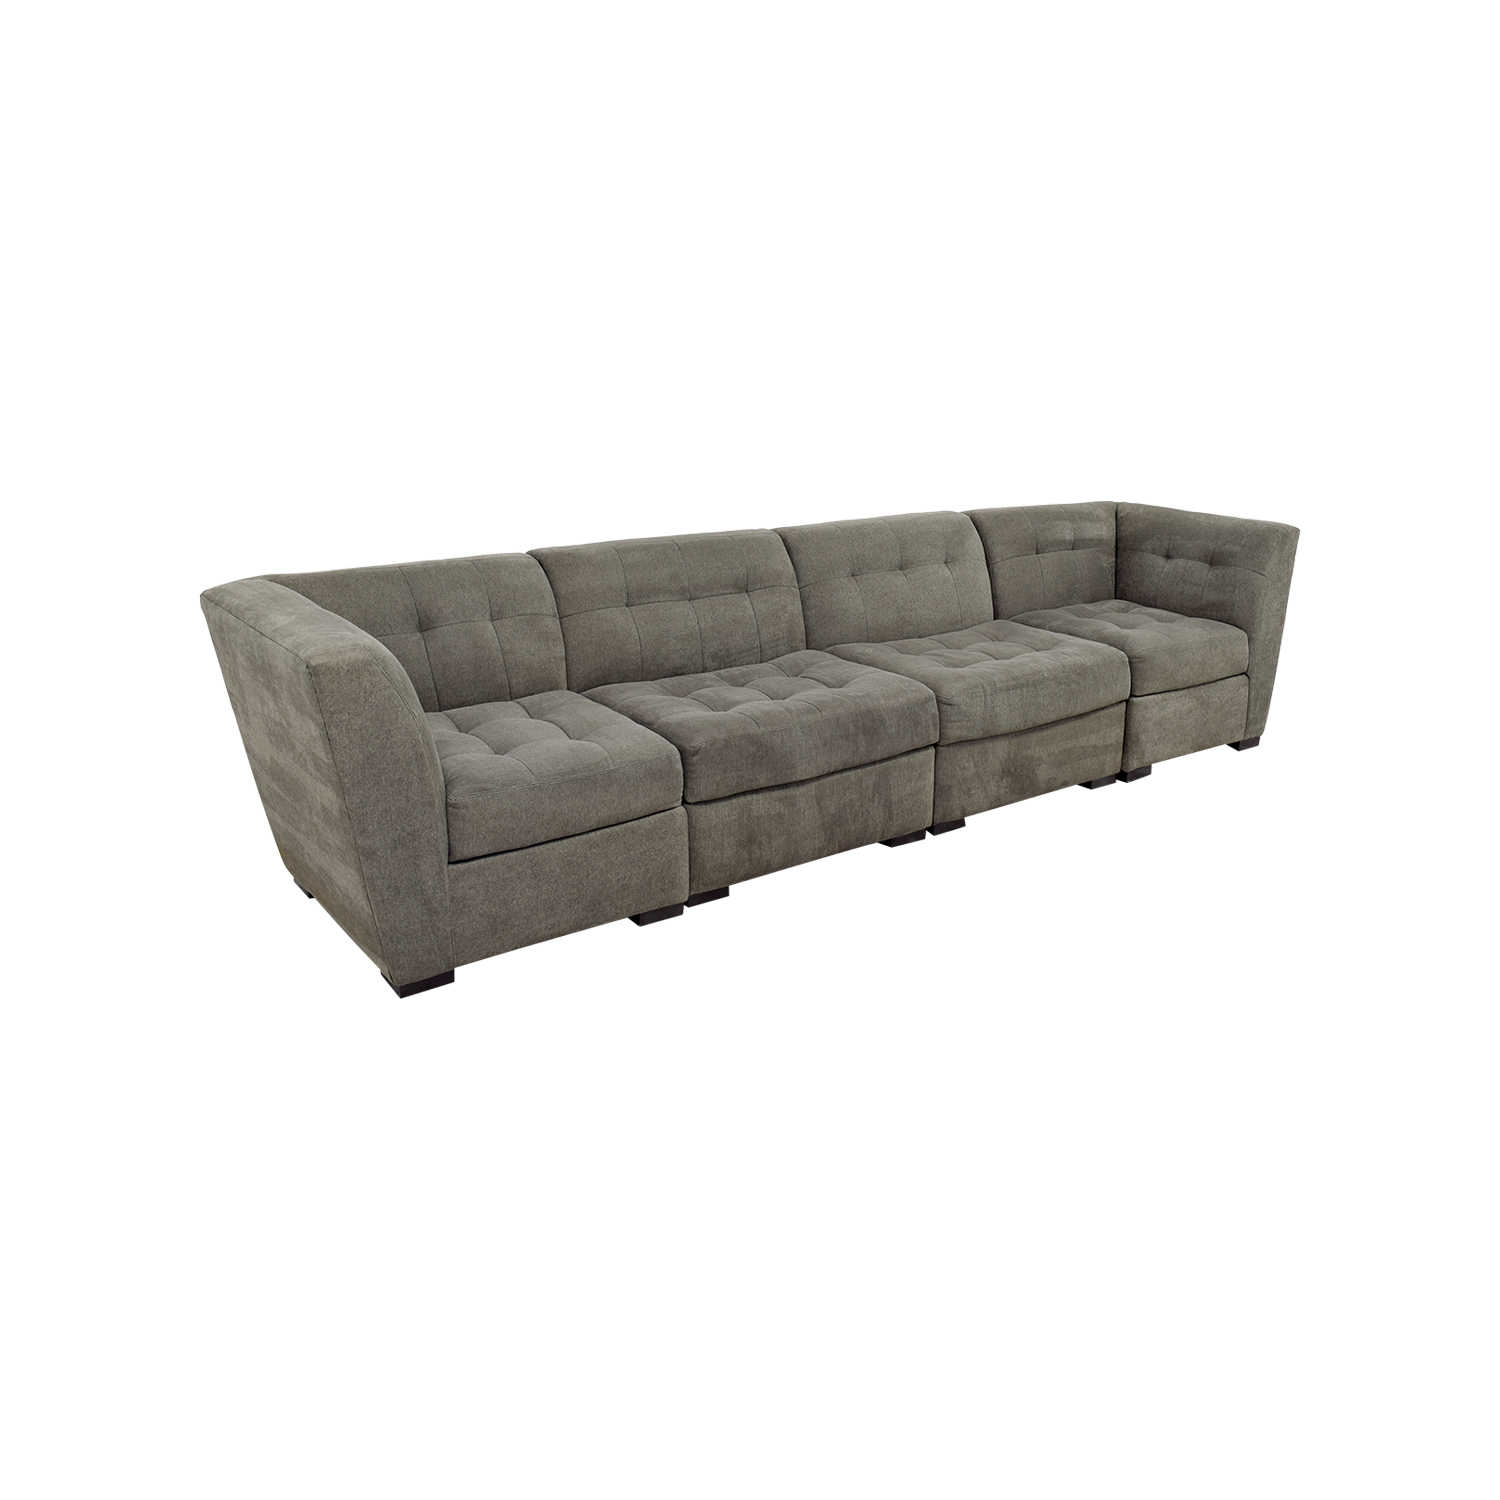 63 off macy 39 s macy 39 s roxanne modular sectional sofa sofas. Black Bedroom Furniture Sets. Home Design Ideas